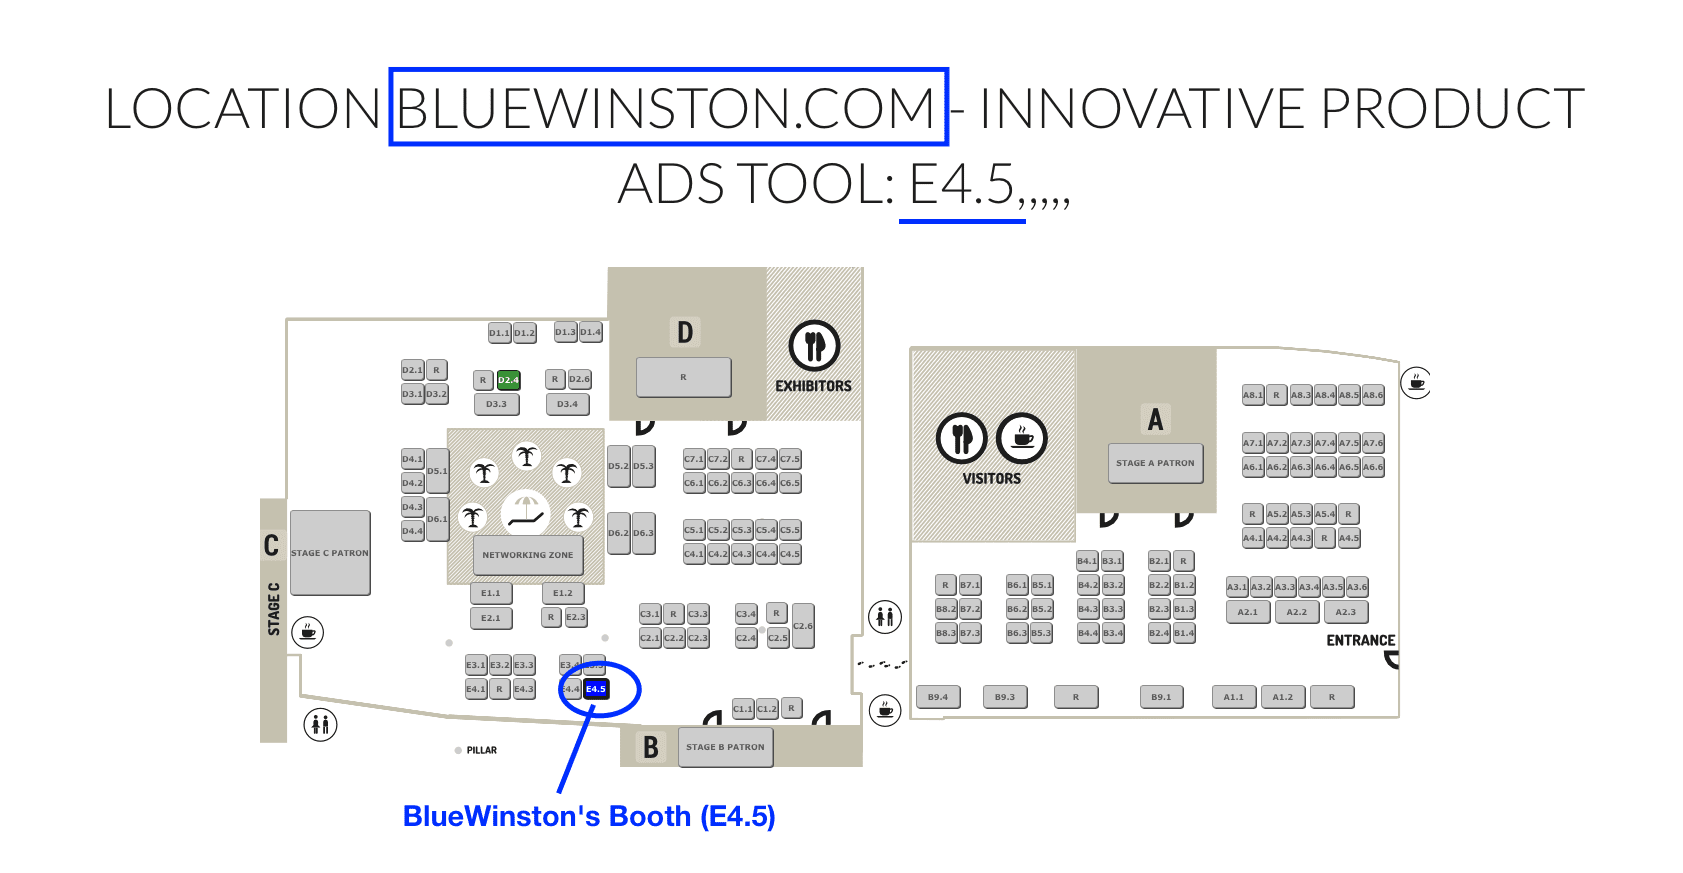 BlueWinston's booth at E-commerce Berlin Expo 2019